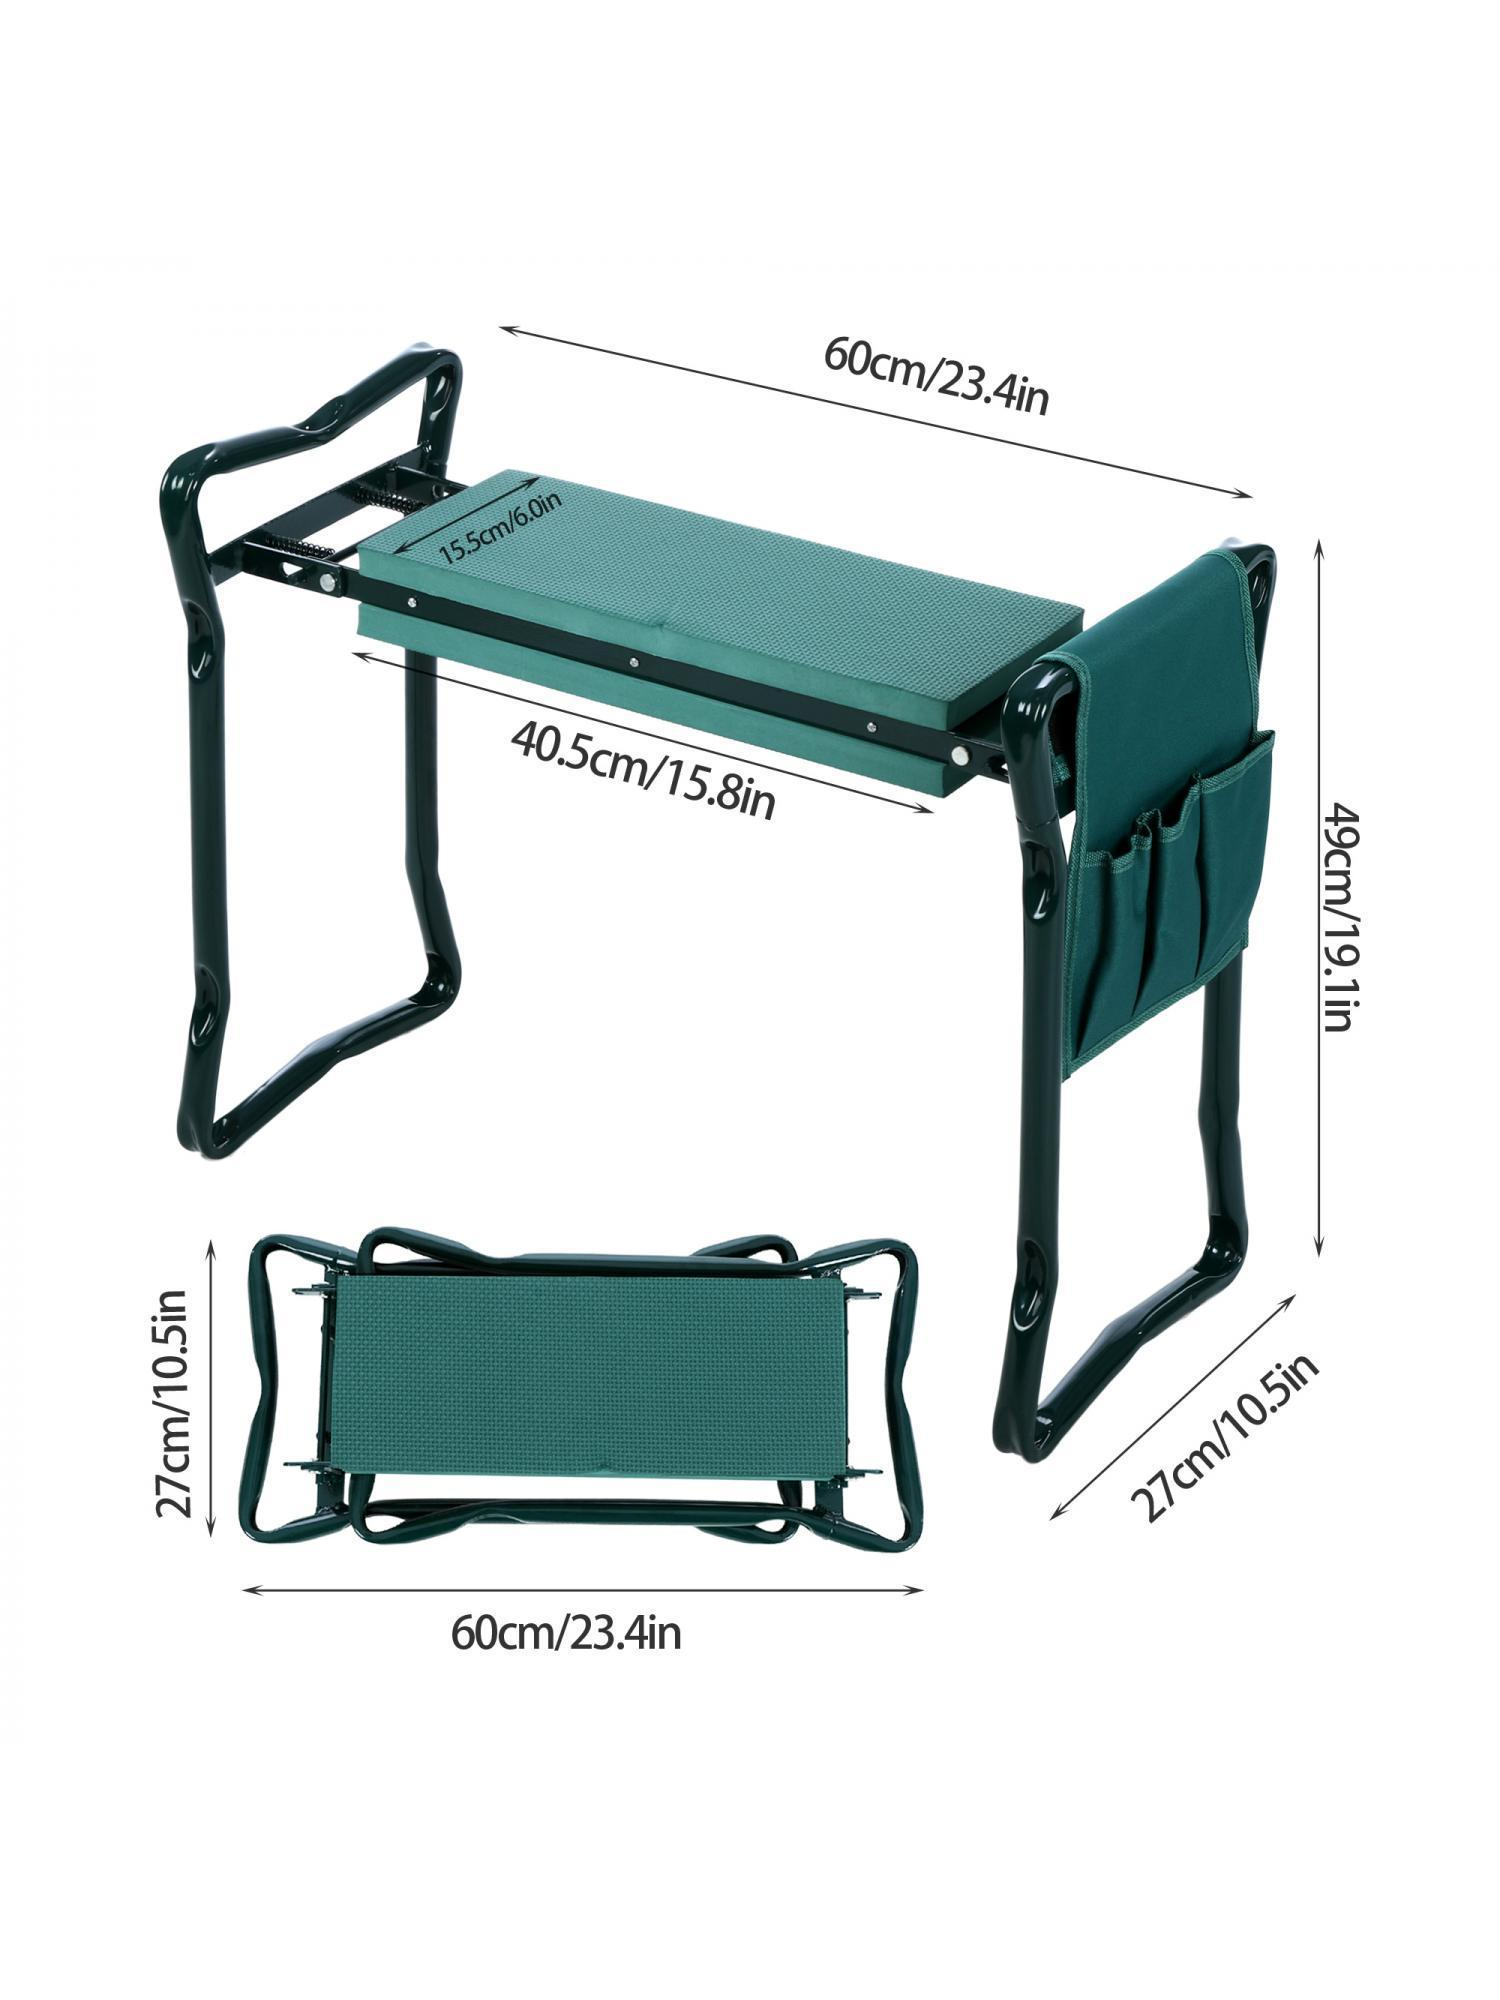 Folding Home/Garden Kneeler Bench Chair W/ 2 X Tool Pouchu0026EVA Kneeling Pad  Handles,250 Lbs Capacity Margot   Walmart.com